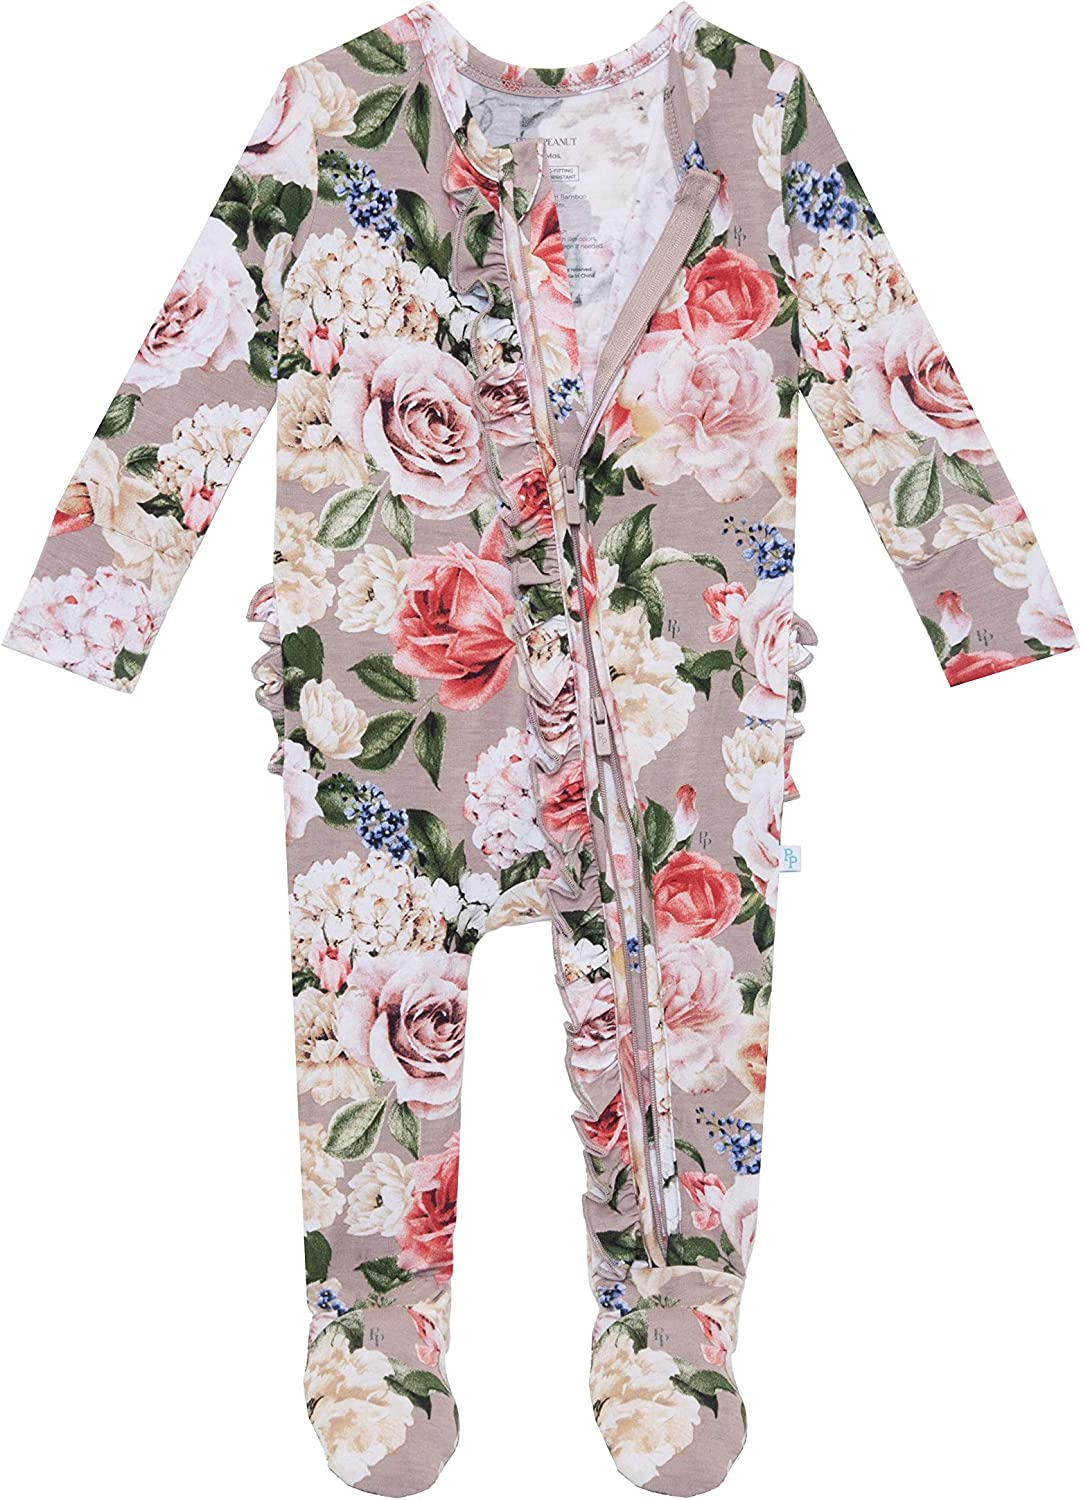 Posh Challenge the lowest price of Japan ☆ Peanut Baby Rompers Pajamas Classic Clothes Sleepers Girl - Newborn